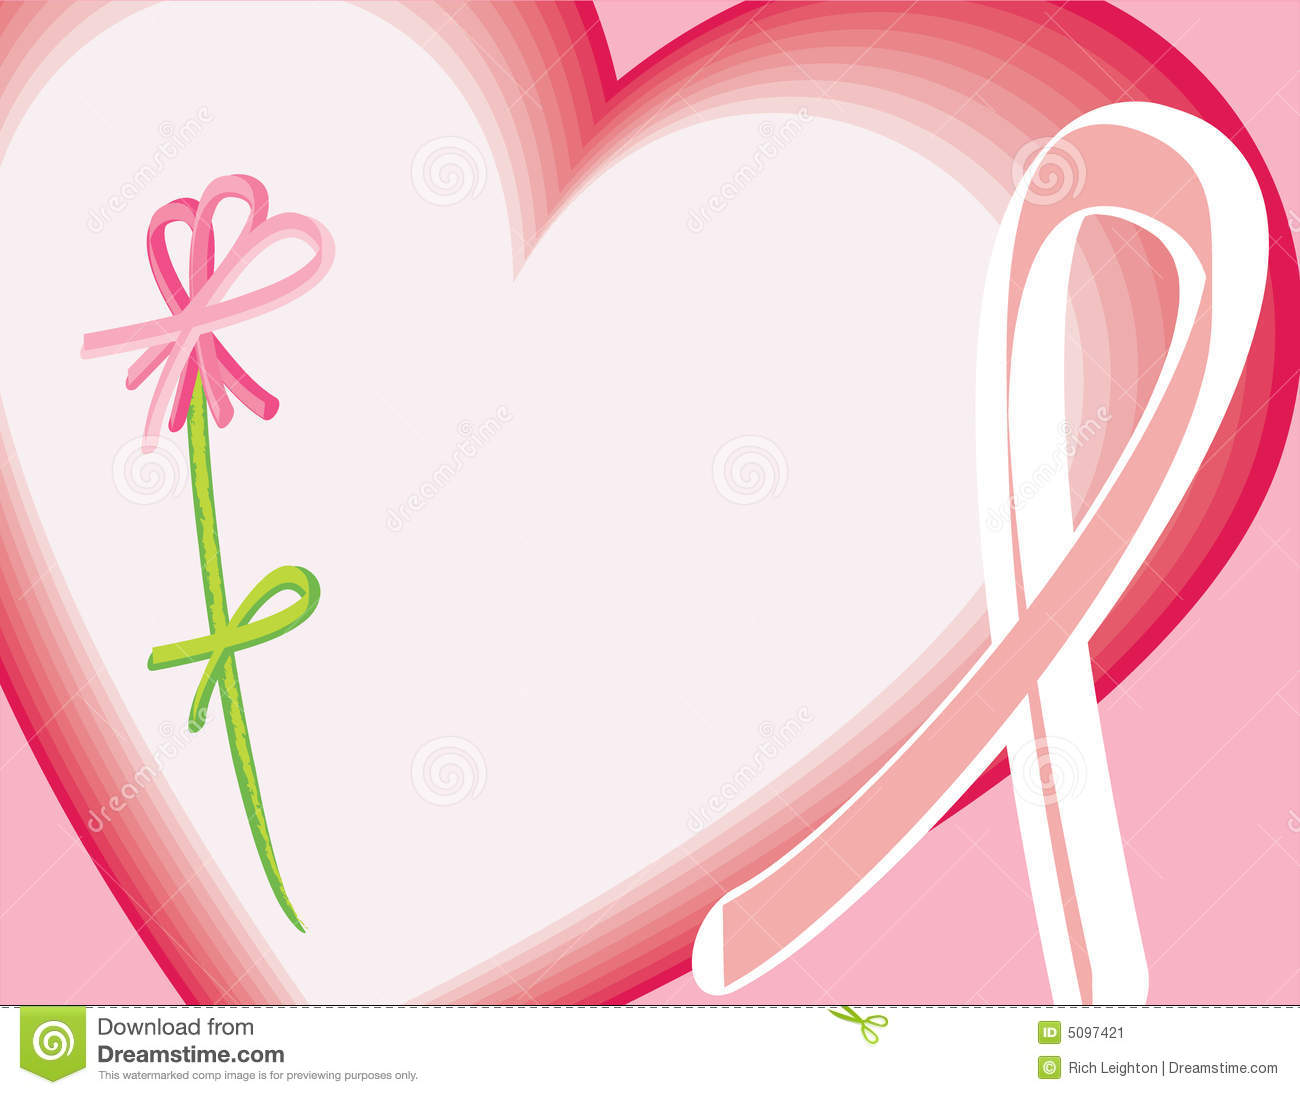 Breast Cancer Awareness Stock Image Image 5097421